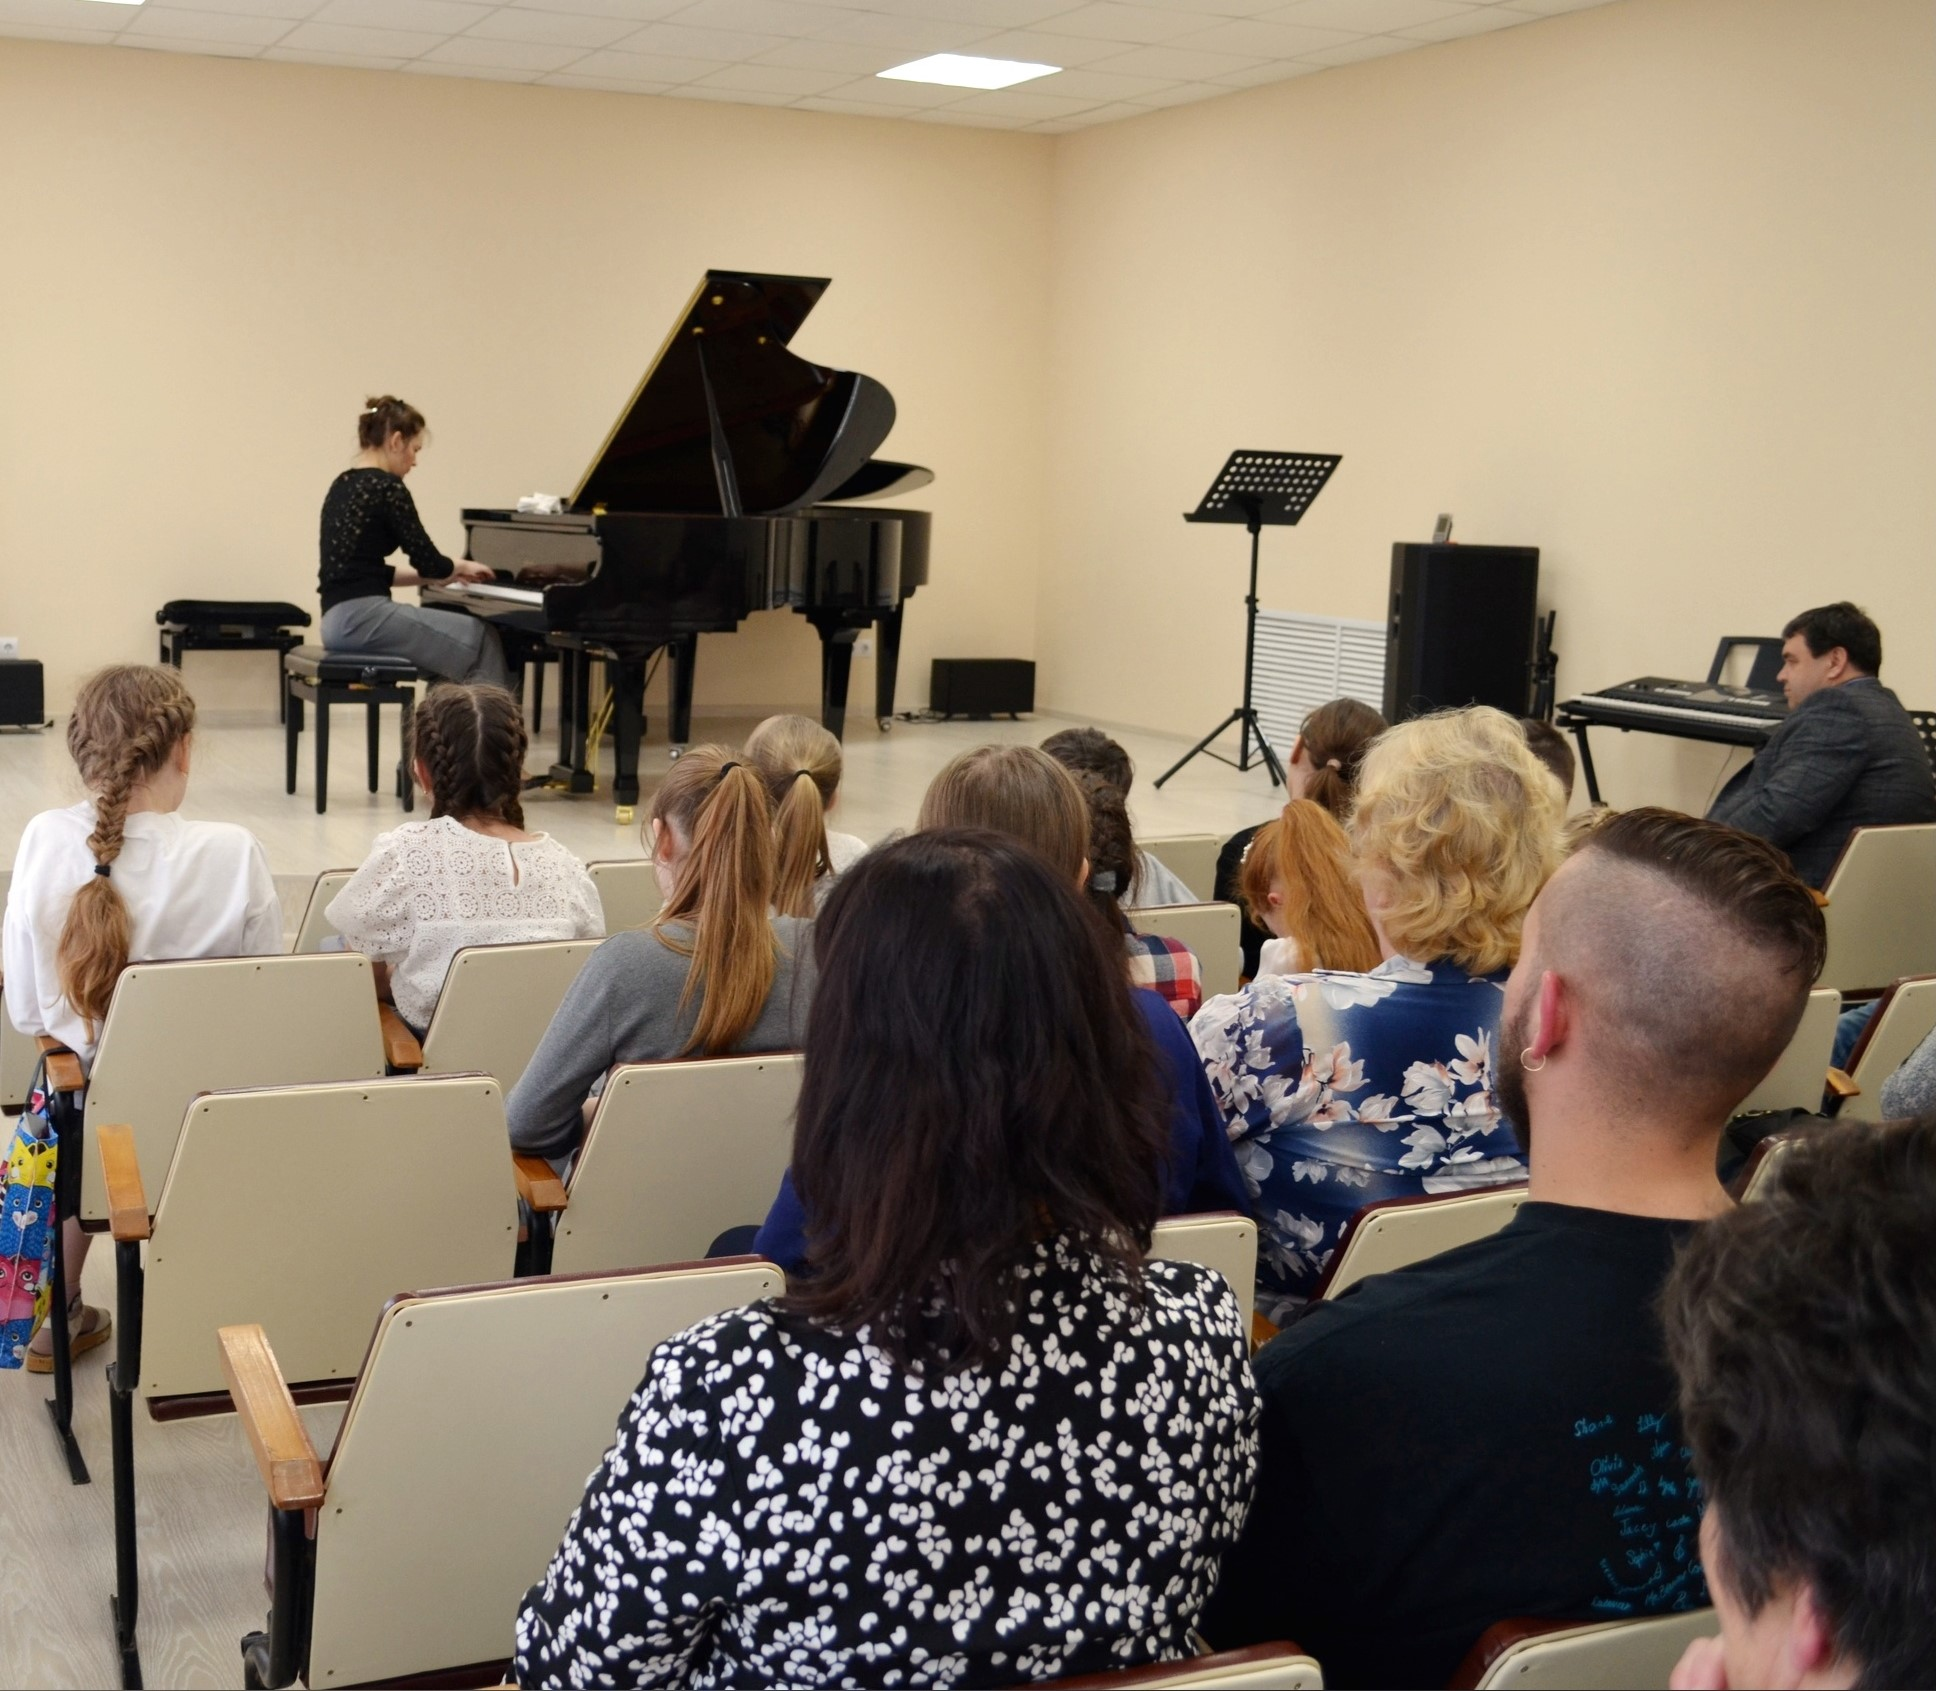 The concert at Liadov Arts&Music School